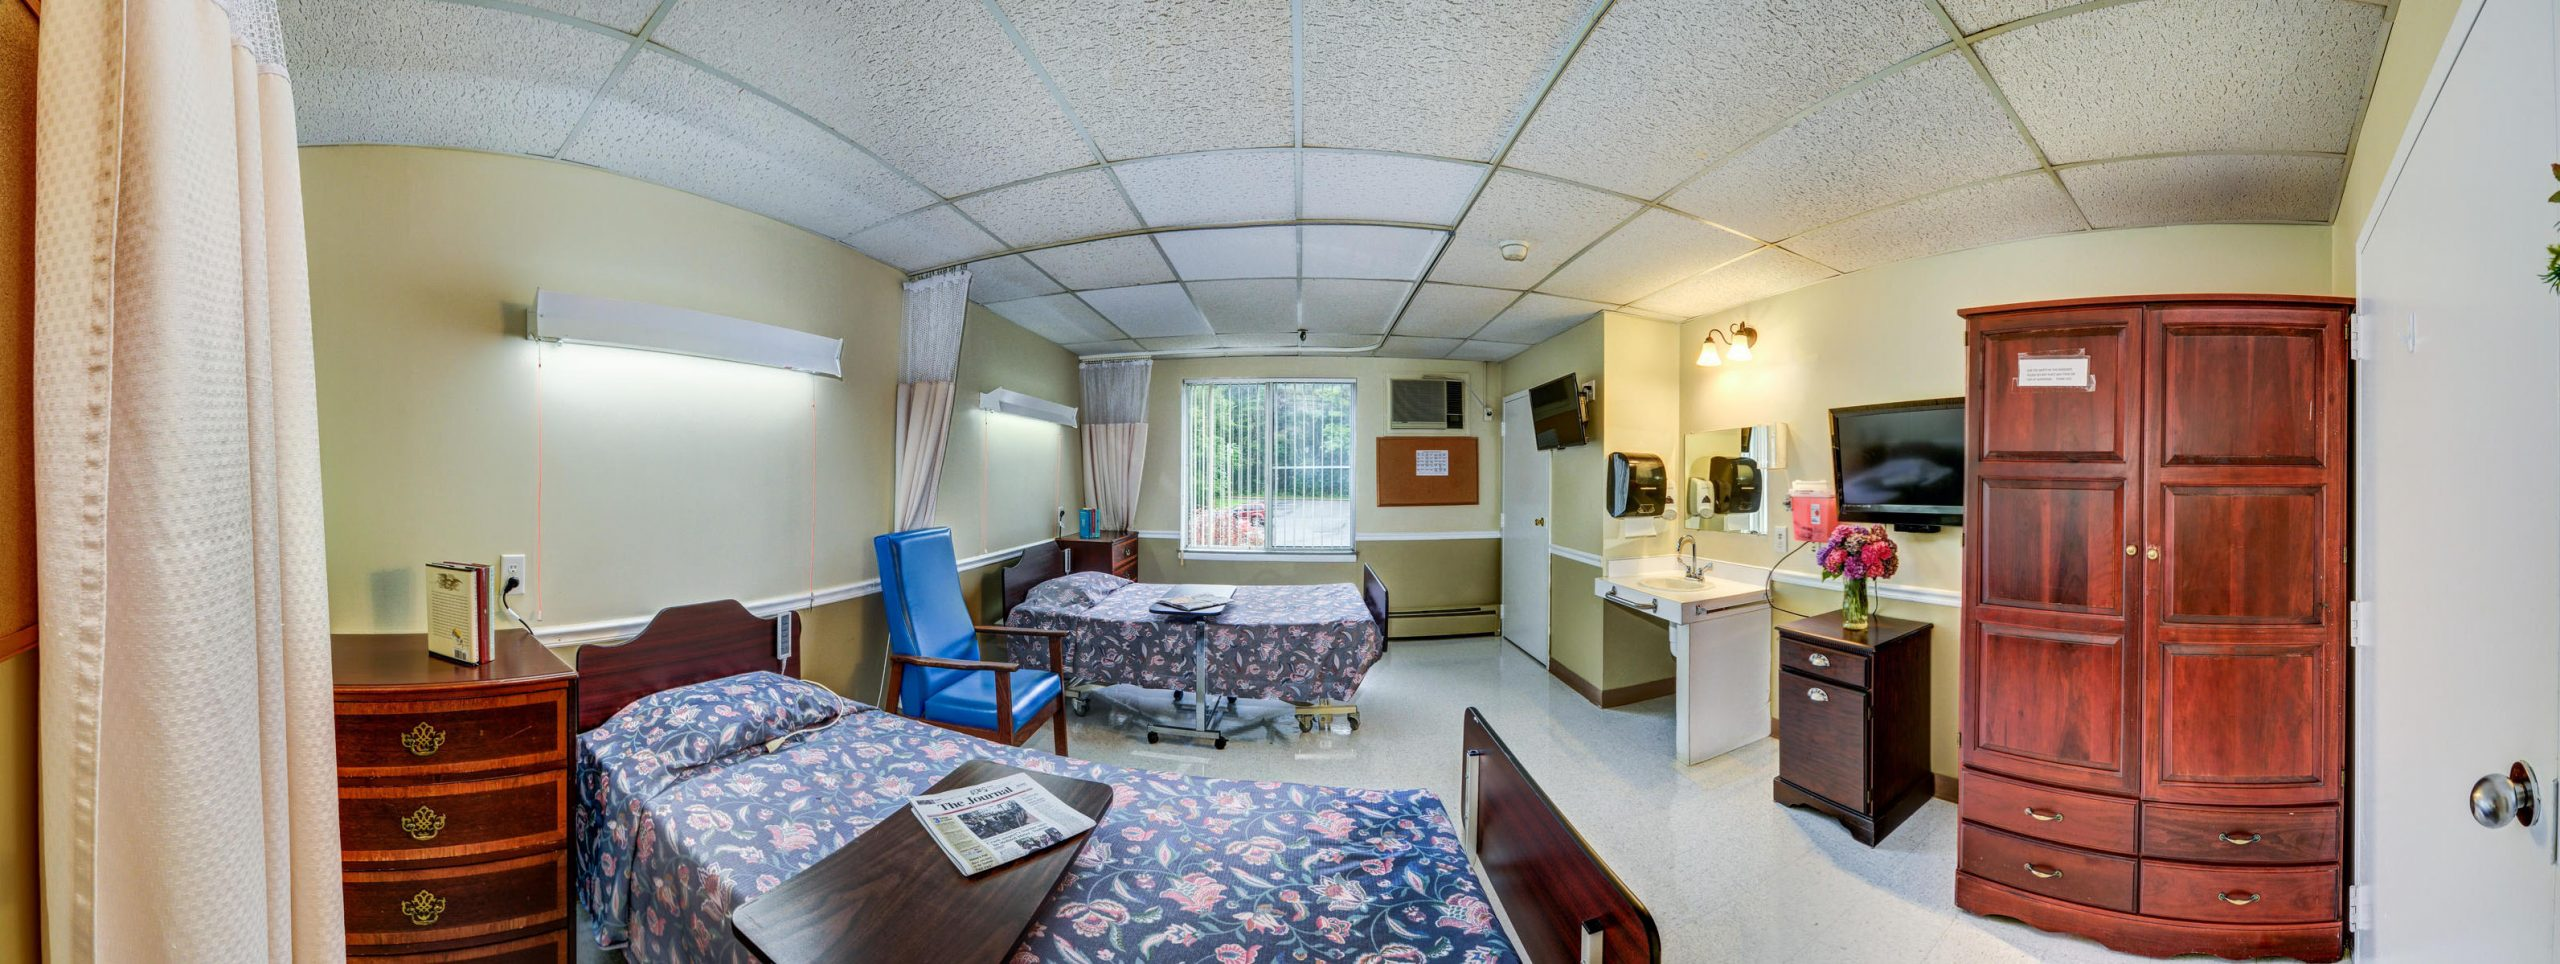 Panoramic view of Stonerise Berkeley Springs patient room with two beds and two TVs